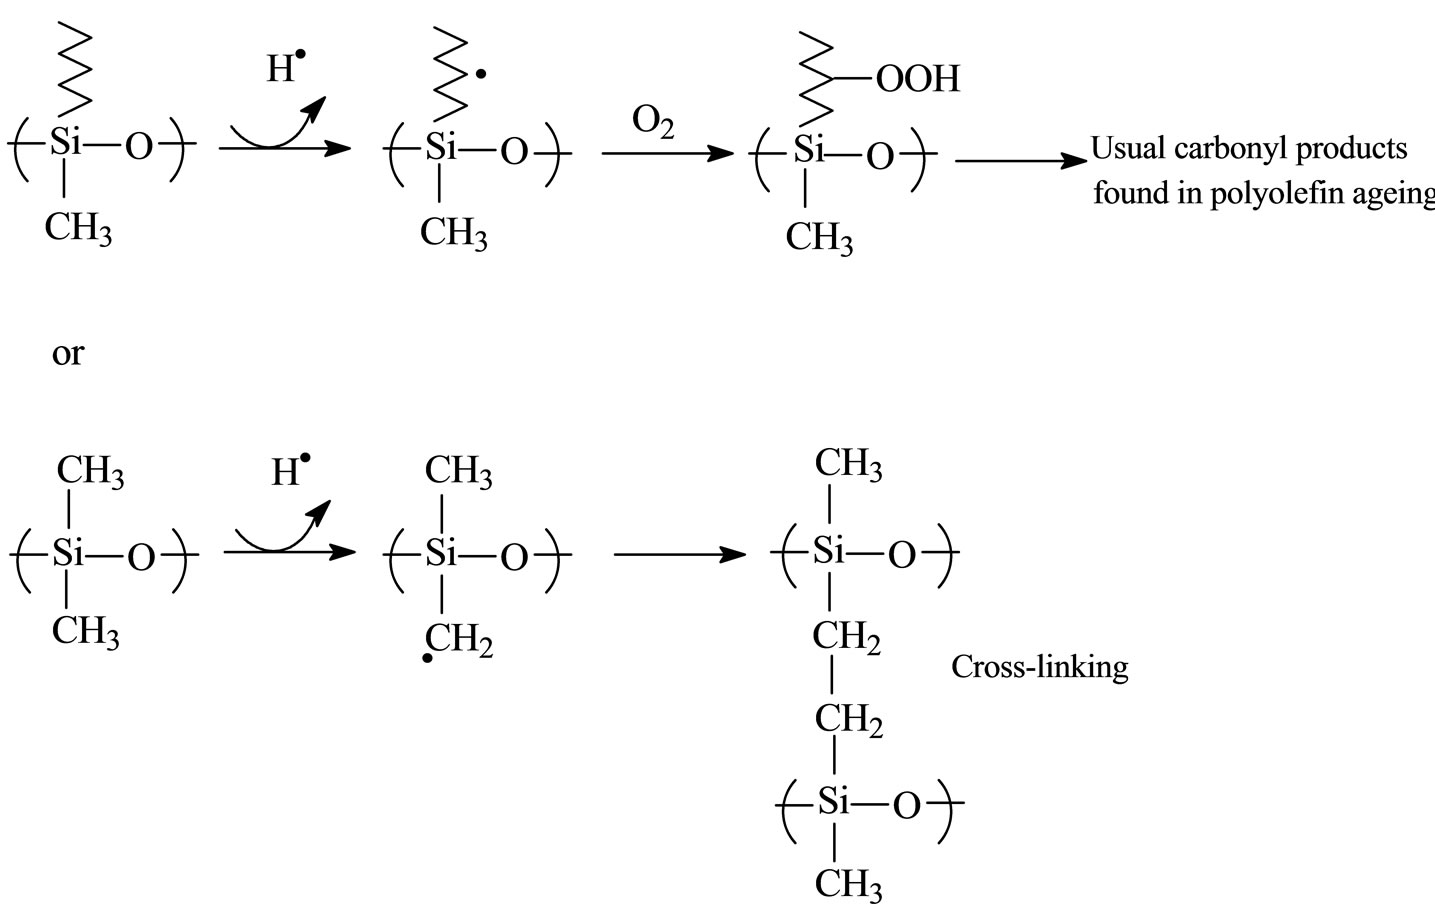 Oxidation Chain Scission And Cross Linking Studies Of